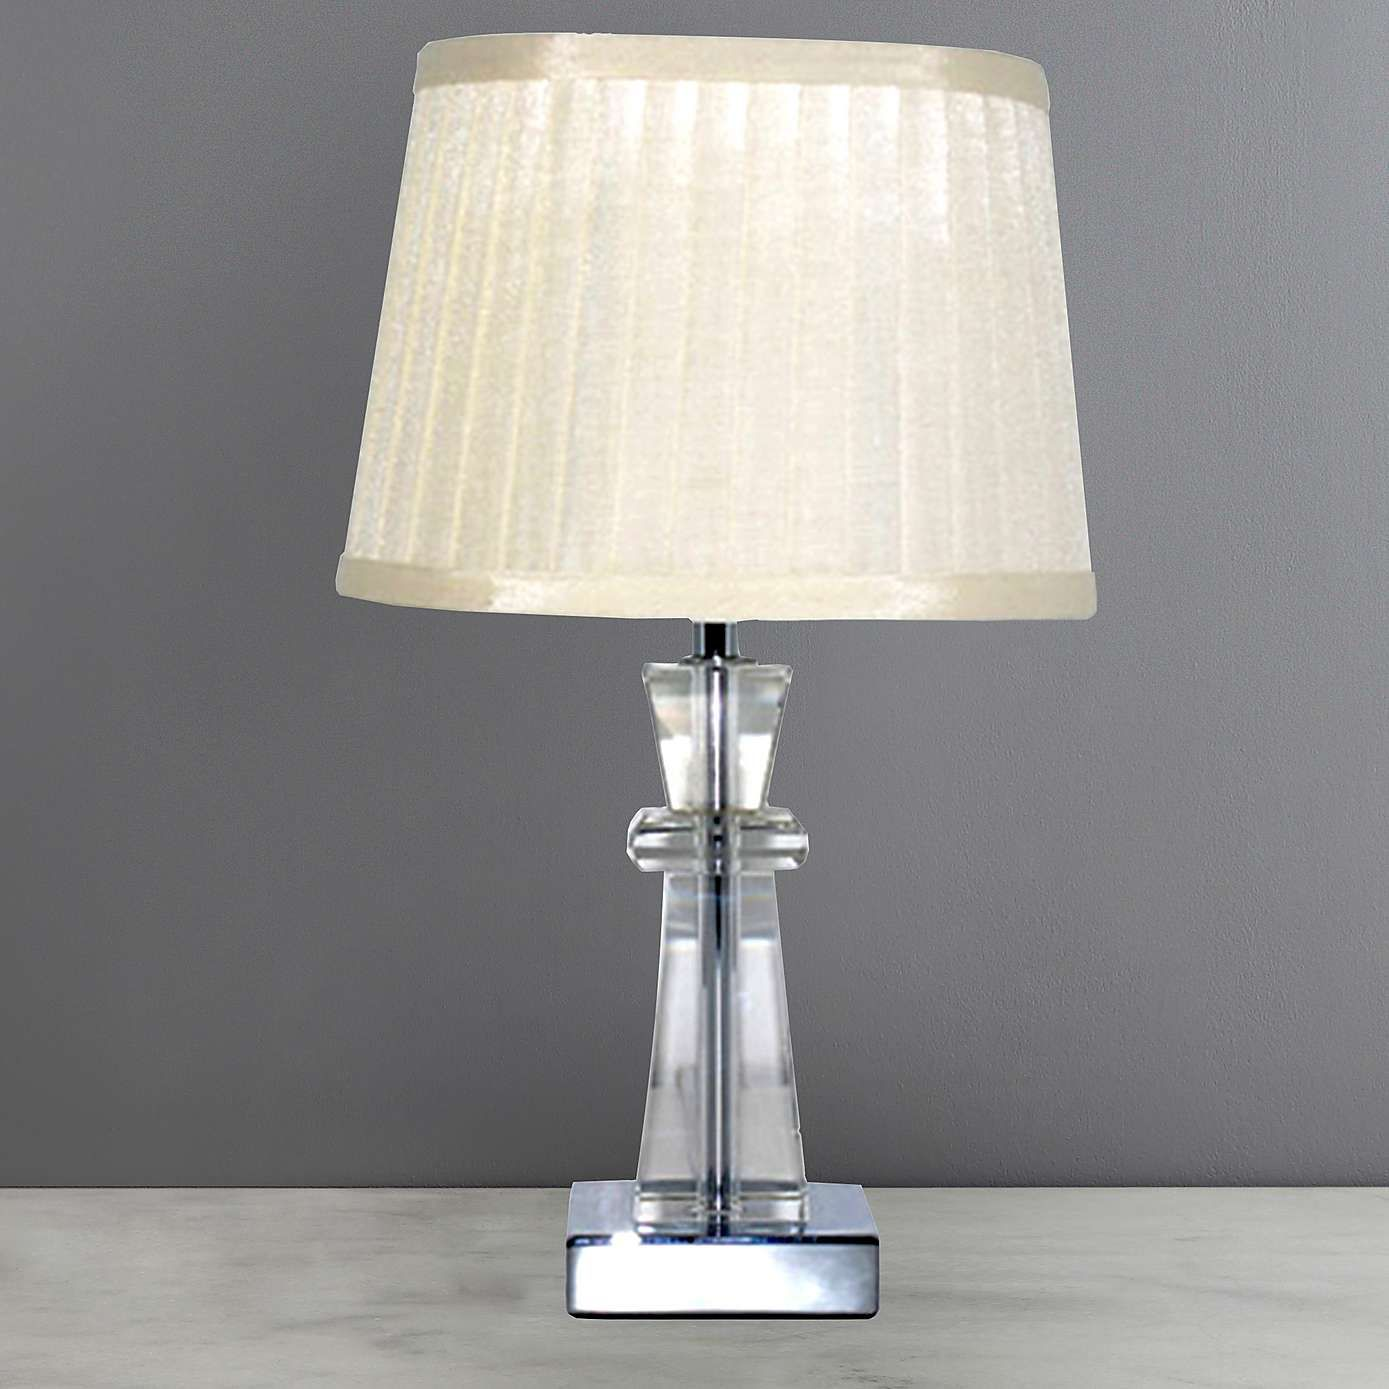 Pyramid Crystal Table Lamp Table Lamp Fabric Shades Crystals